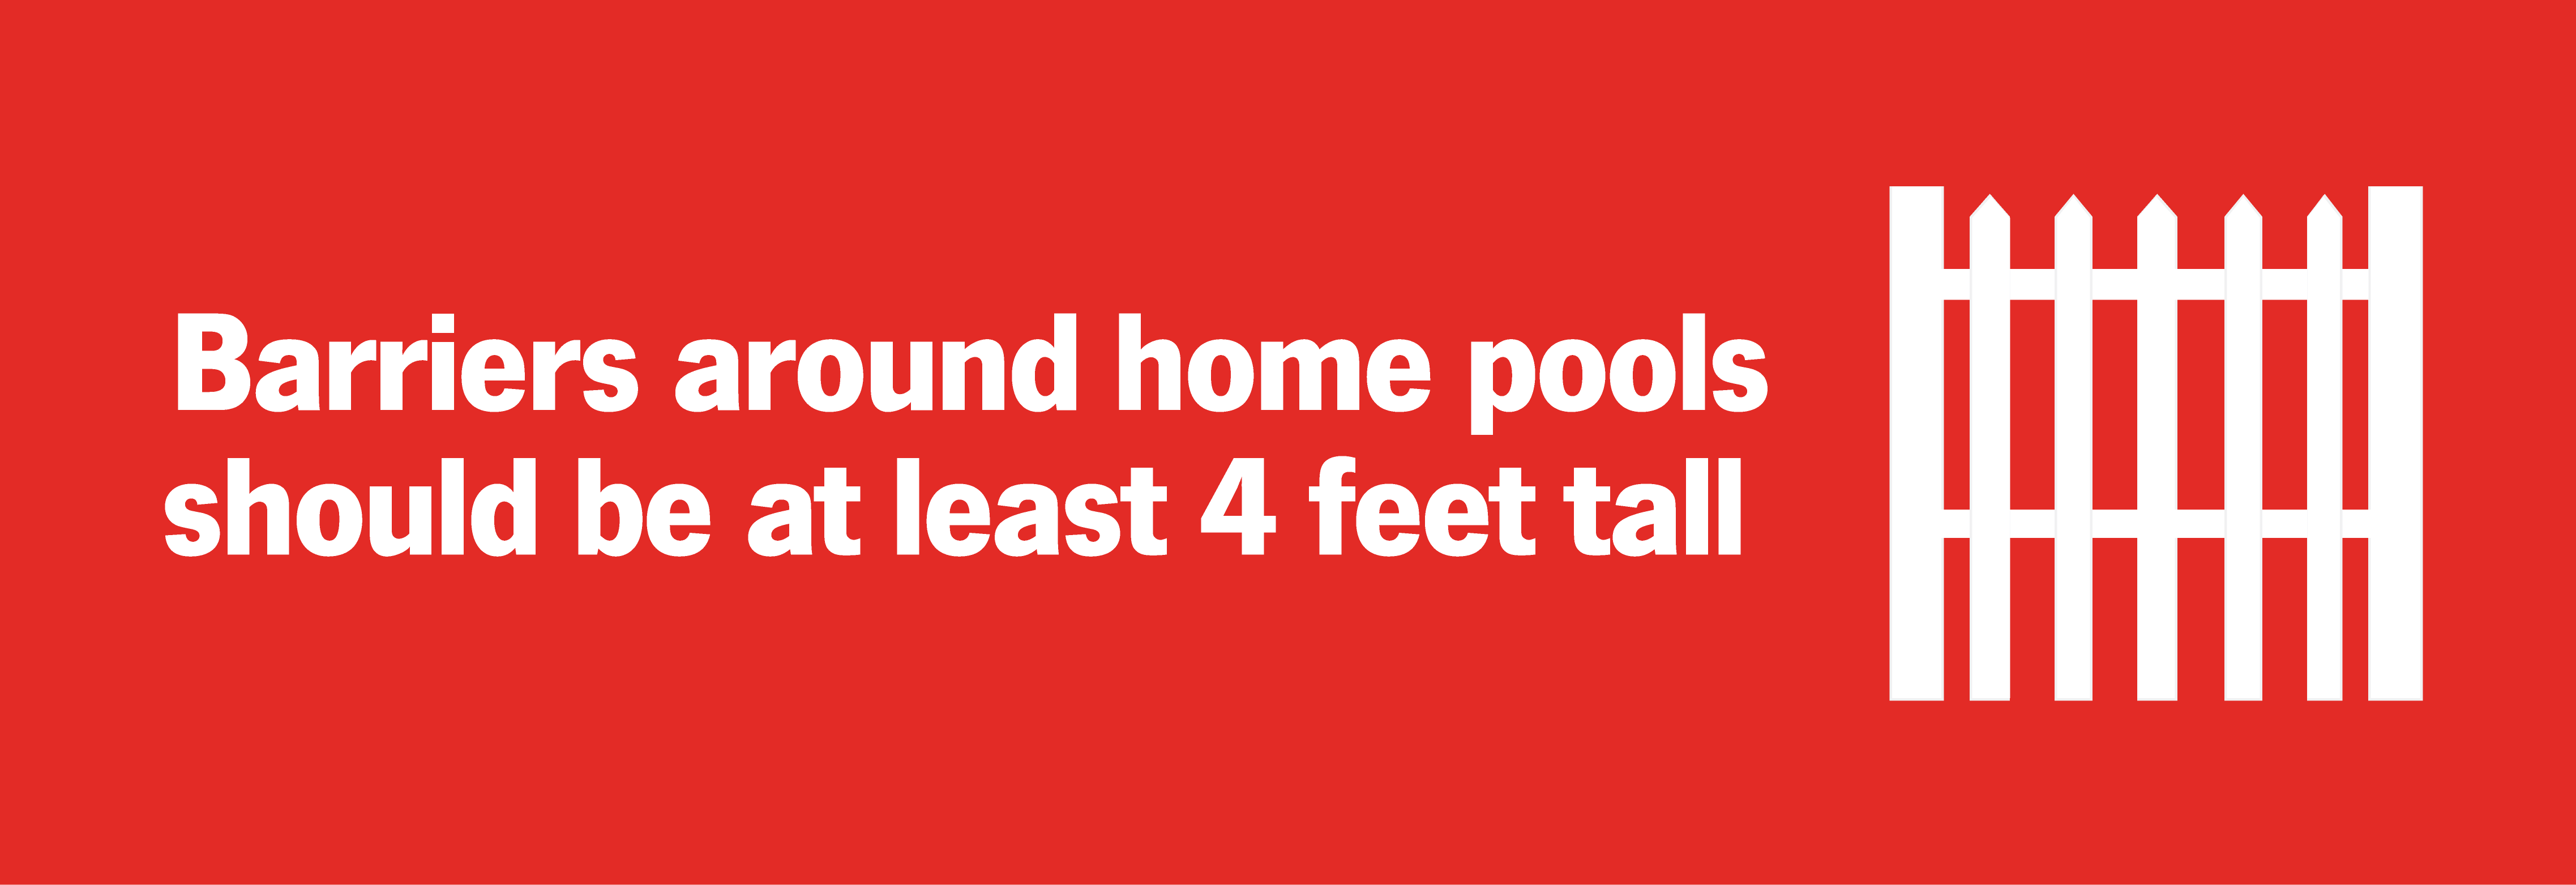 Barriers around home pools should be at least 4 feet tall.